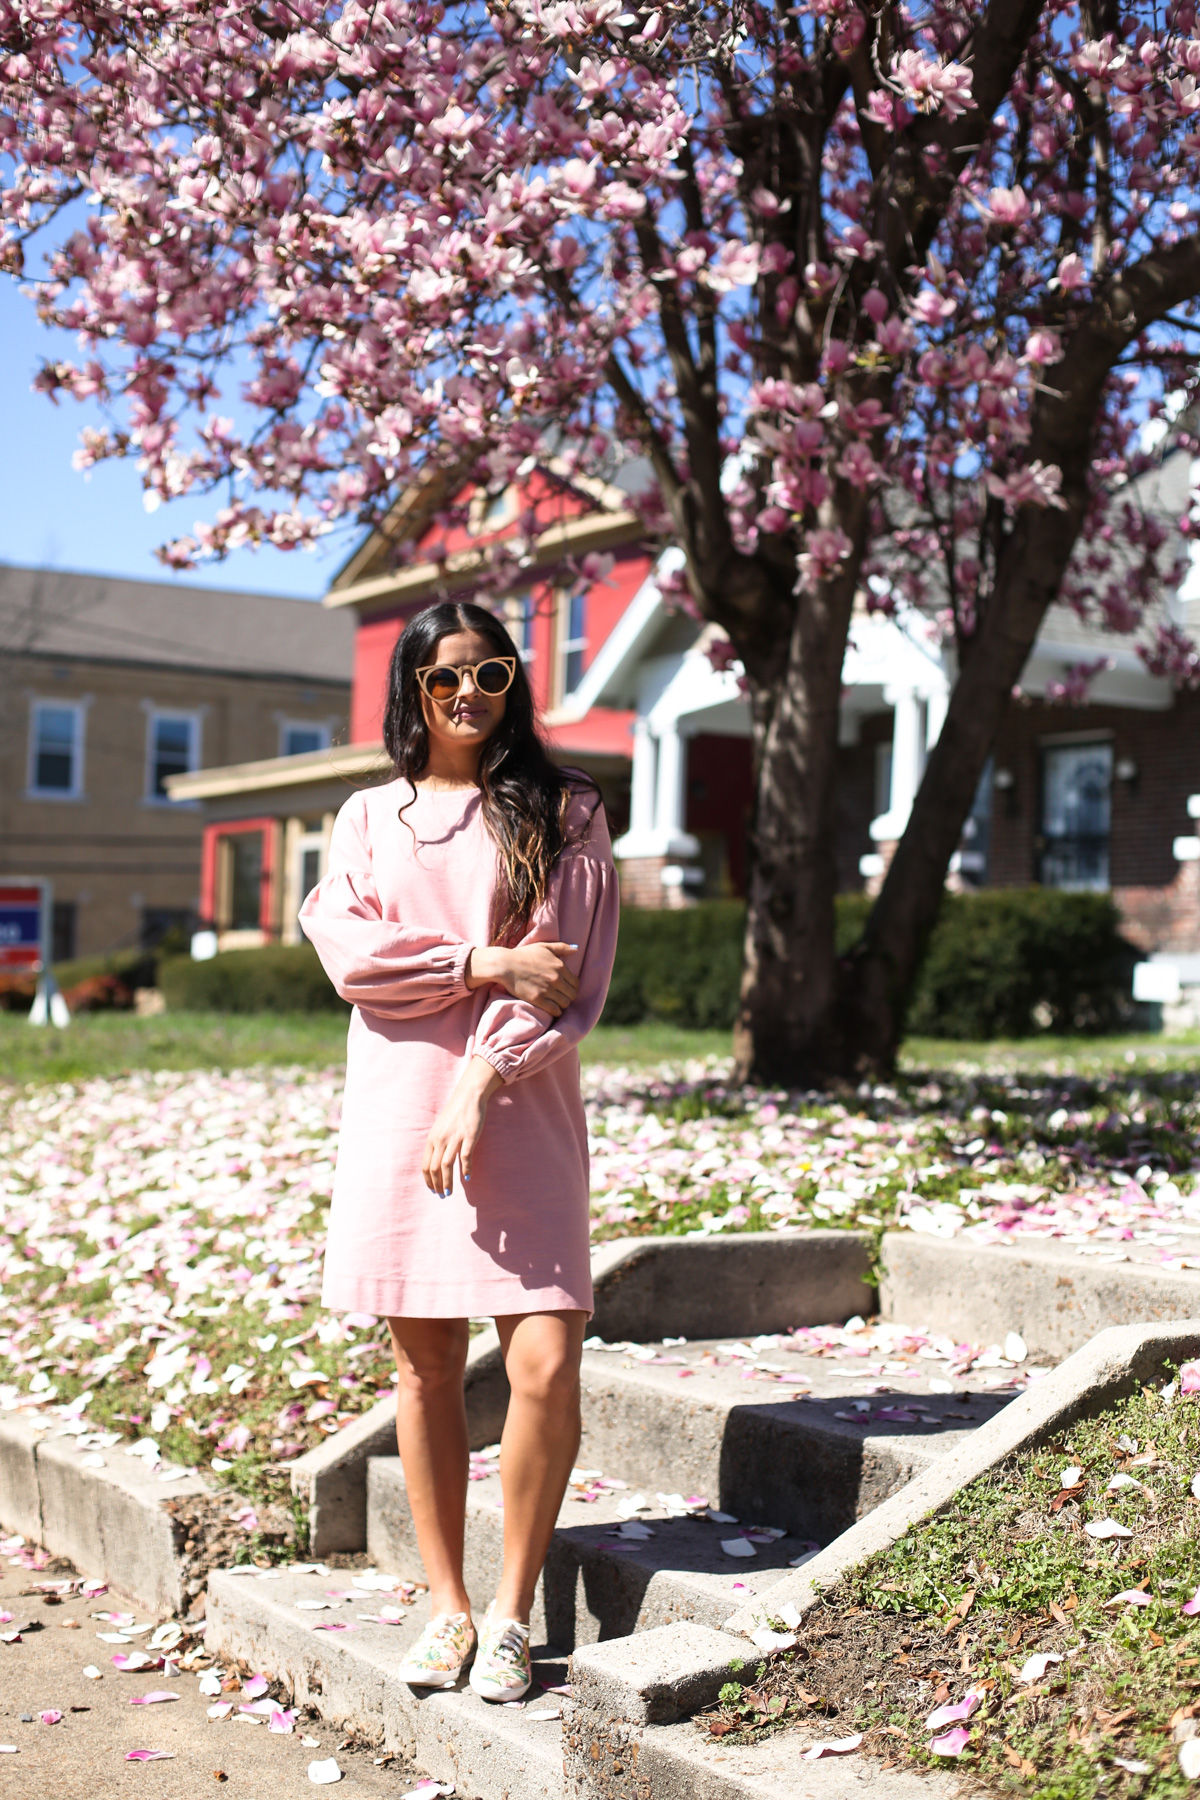 Priya the Blog, Nashville fashion blog, Nashville fashion blogger, Nashville style blog, Nashville style blogger, gold cat eye ban.do sunnies, LOFT pink sweatshirt dress, Rifle Paper Co. x Keds, floral keds, how to wear floral tennis shoes, Spring outfit, Spring outfit with floral Keds, pink sweatshirt dress, Rifle Paper Co., ColourPop Ultra Glossy Gloss in Aquarius